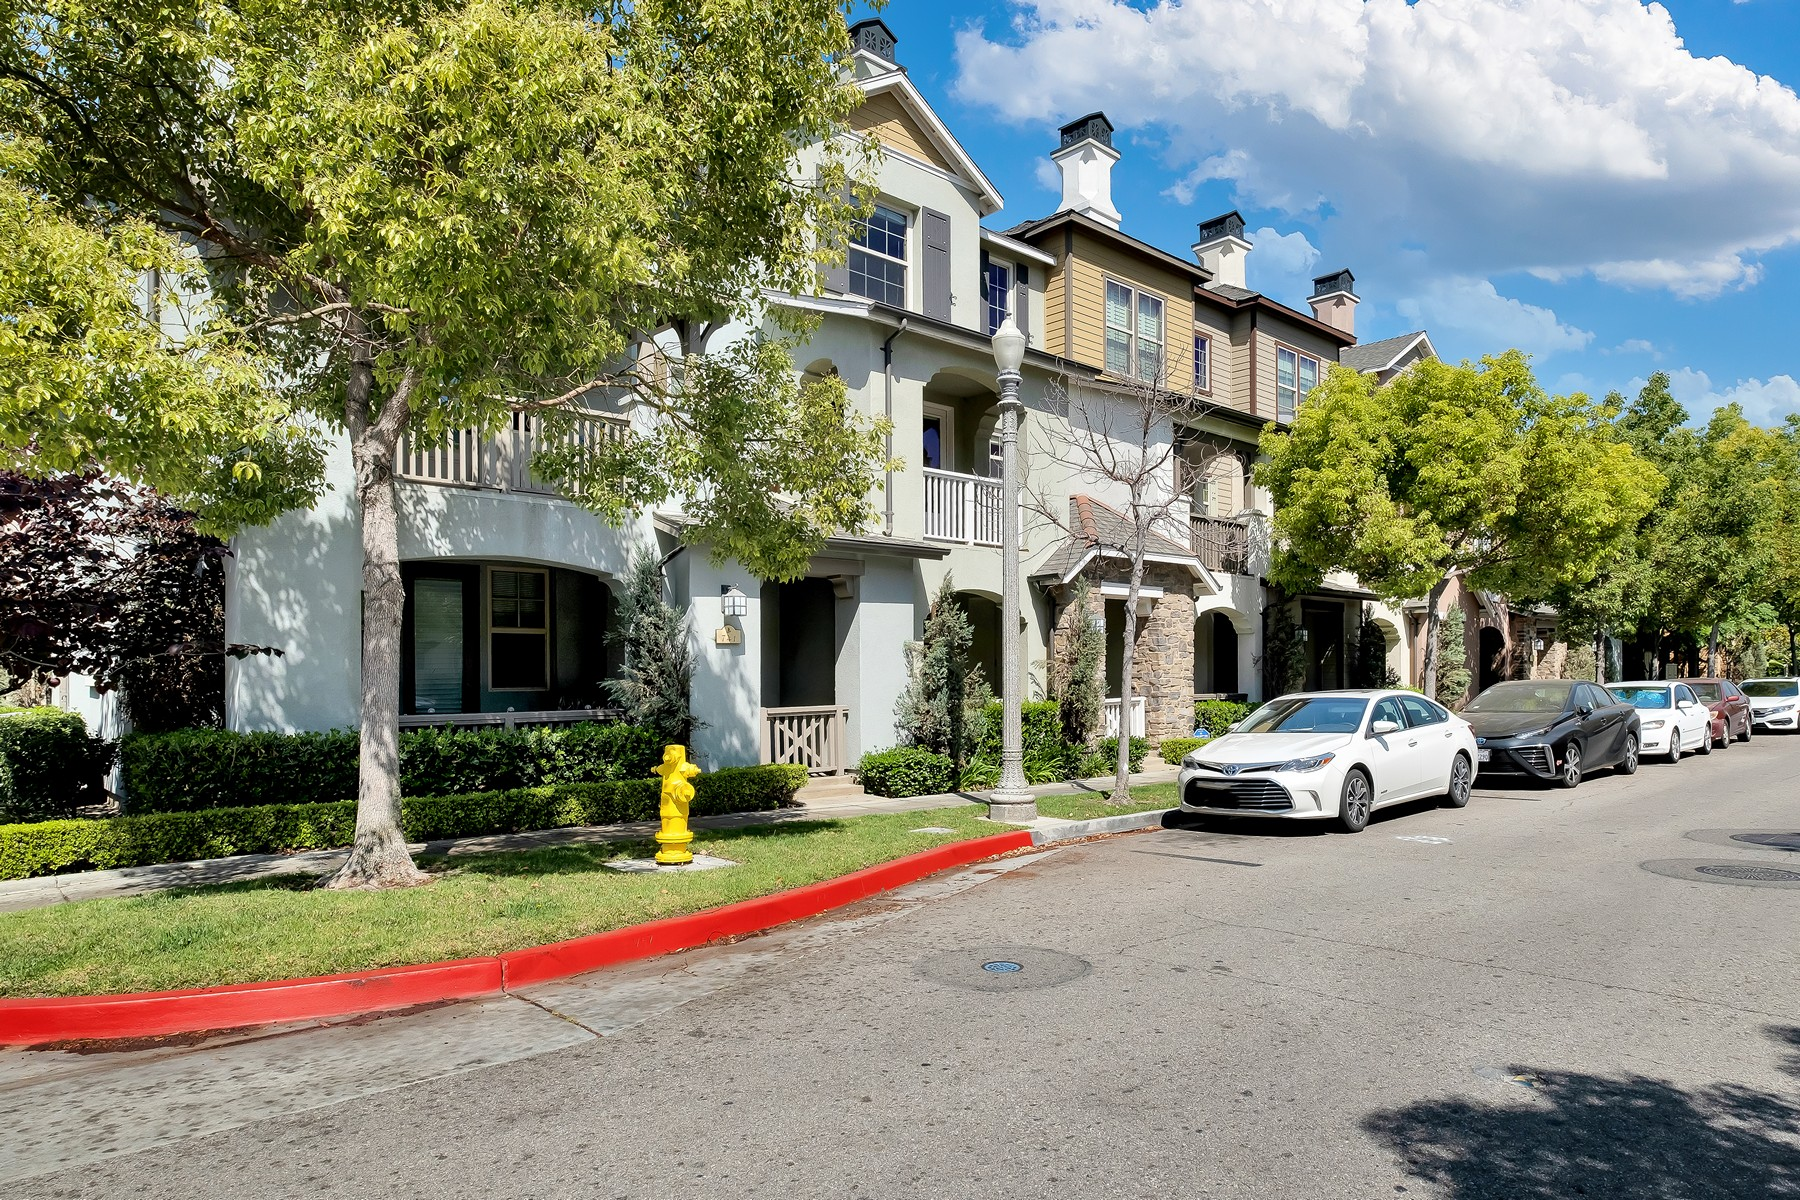 townhouses for Sale at Anaheim, California 92805 739 S. Kroeger Street Anaheim, California 92805 United States